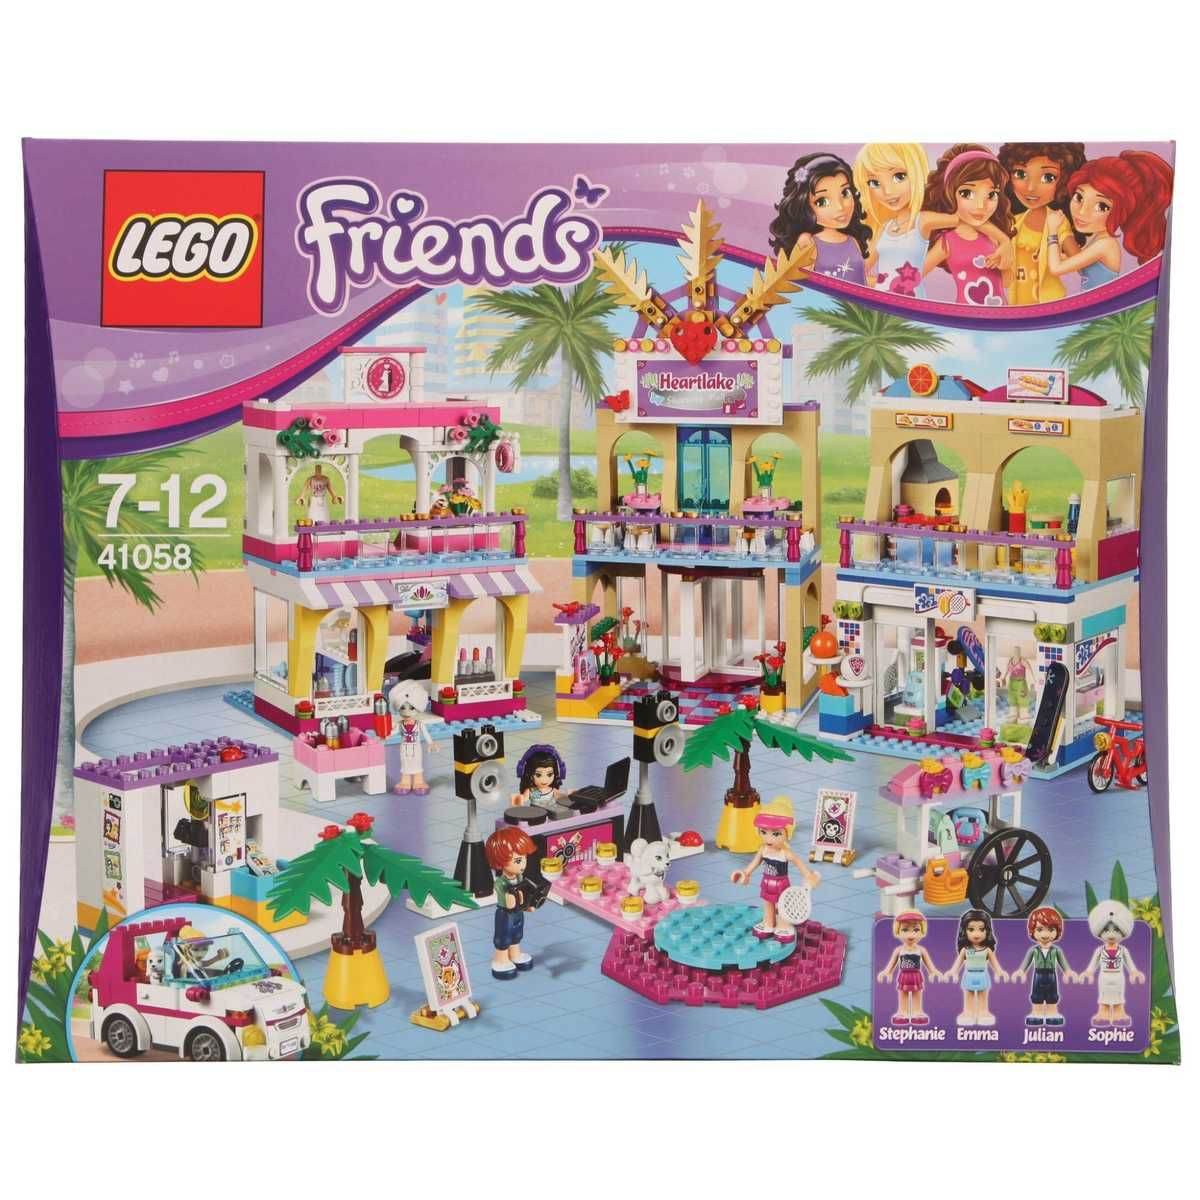 Lego Friends Heartlake Shopping Mall 41058 Gift Ideas Lego